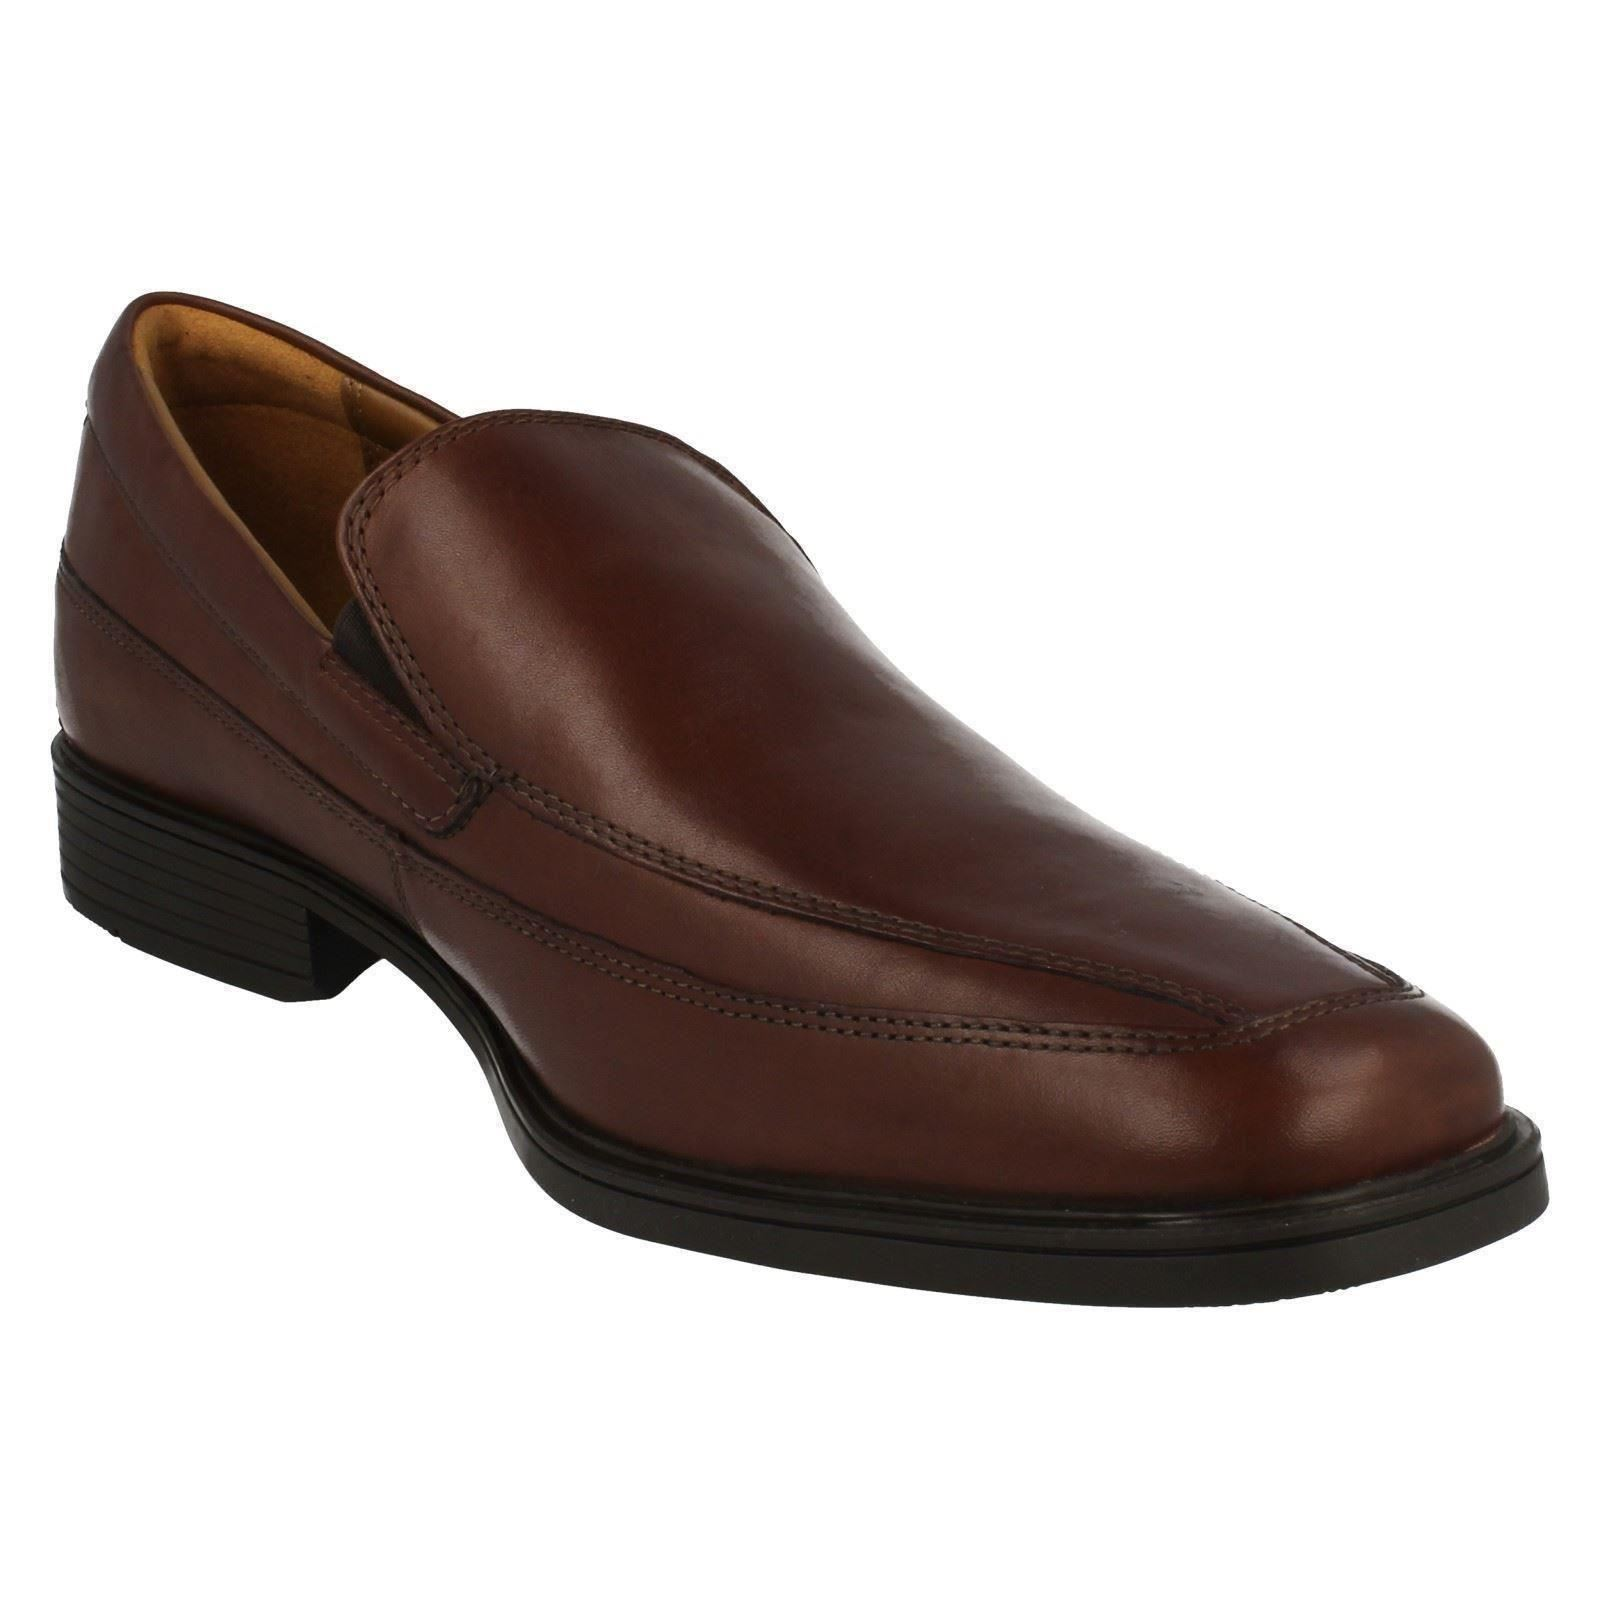 Uomo Clarks Schuhes Formal Schuhes Clarks Tilden Free 69b498